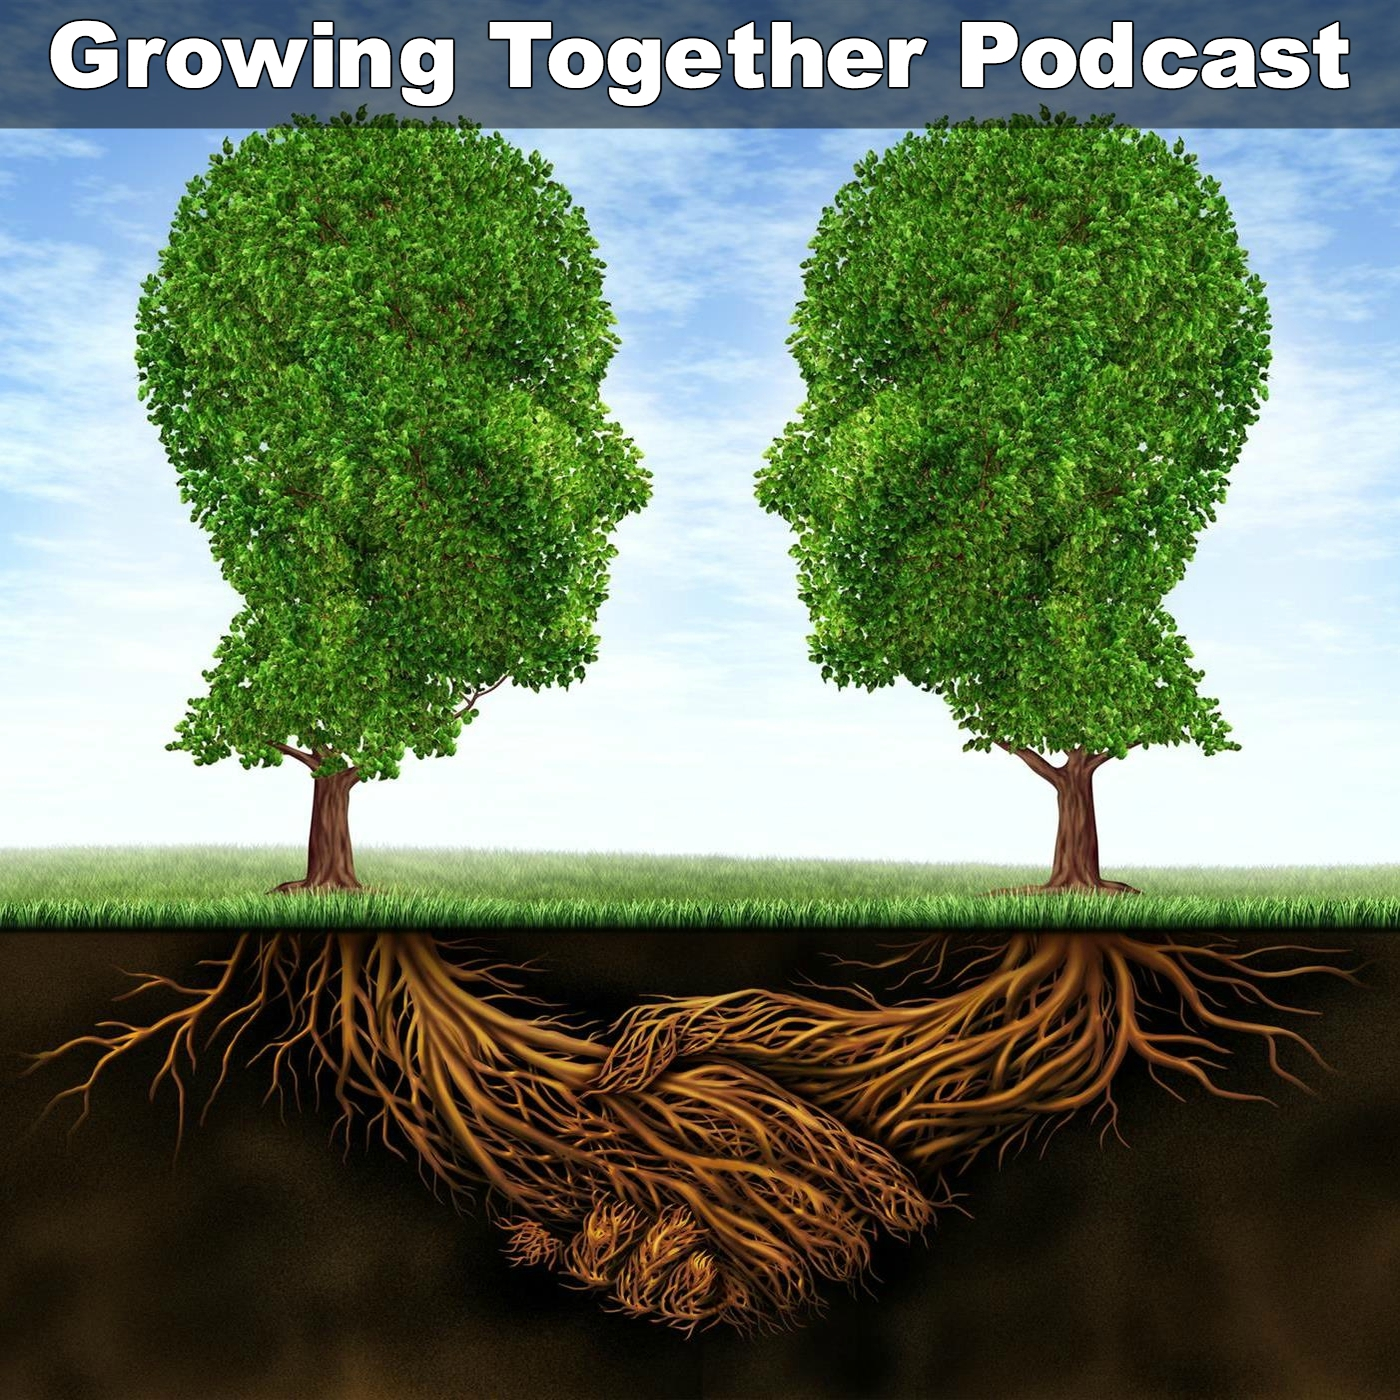 Growing Together Podcast